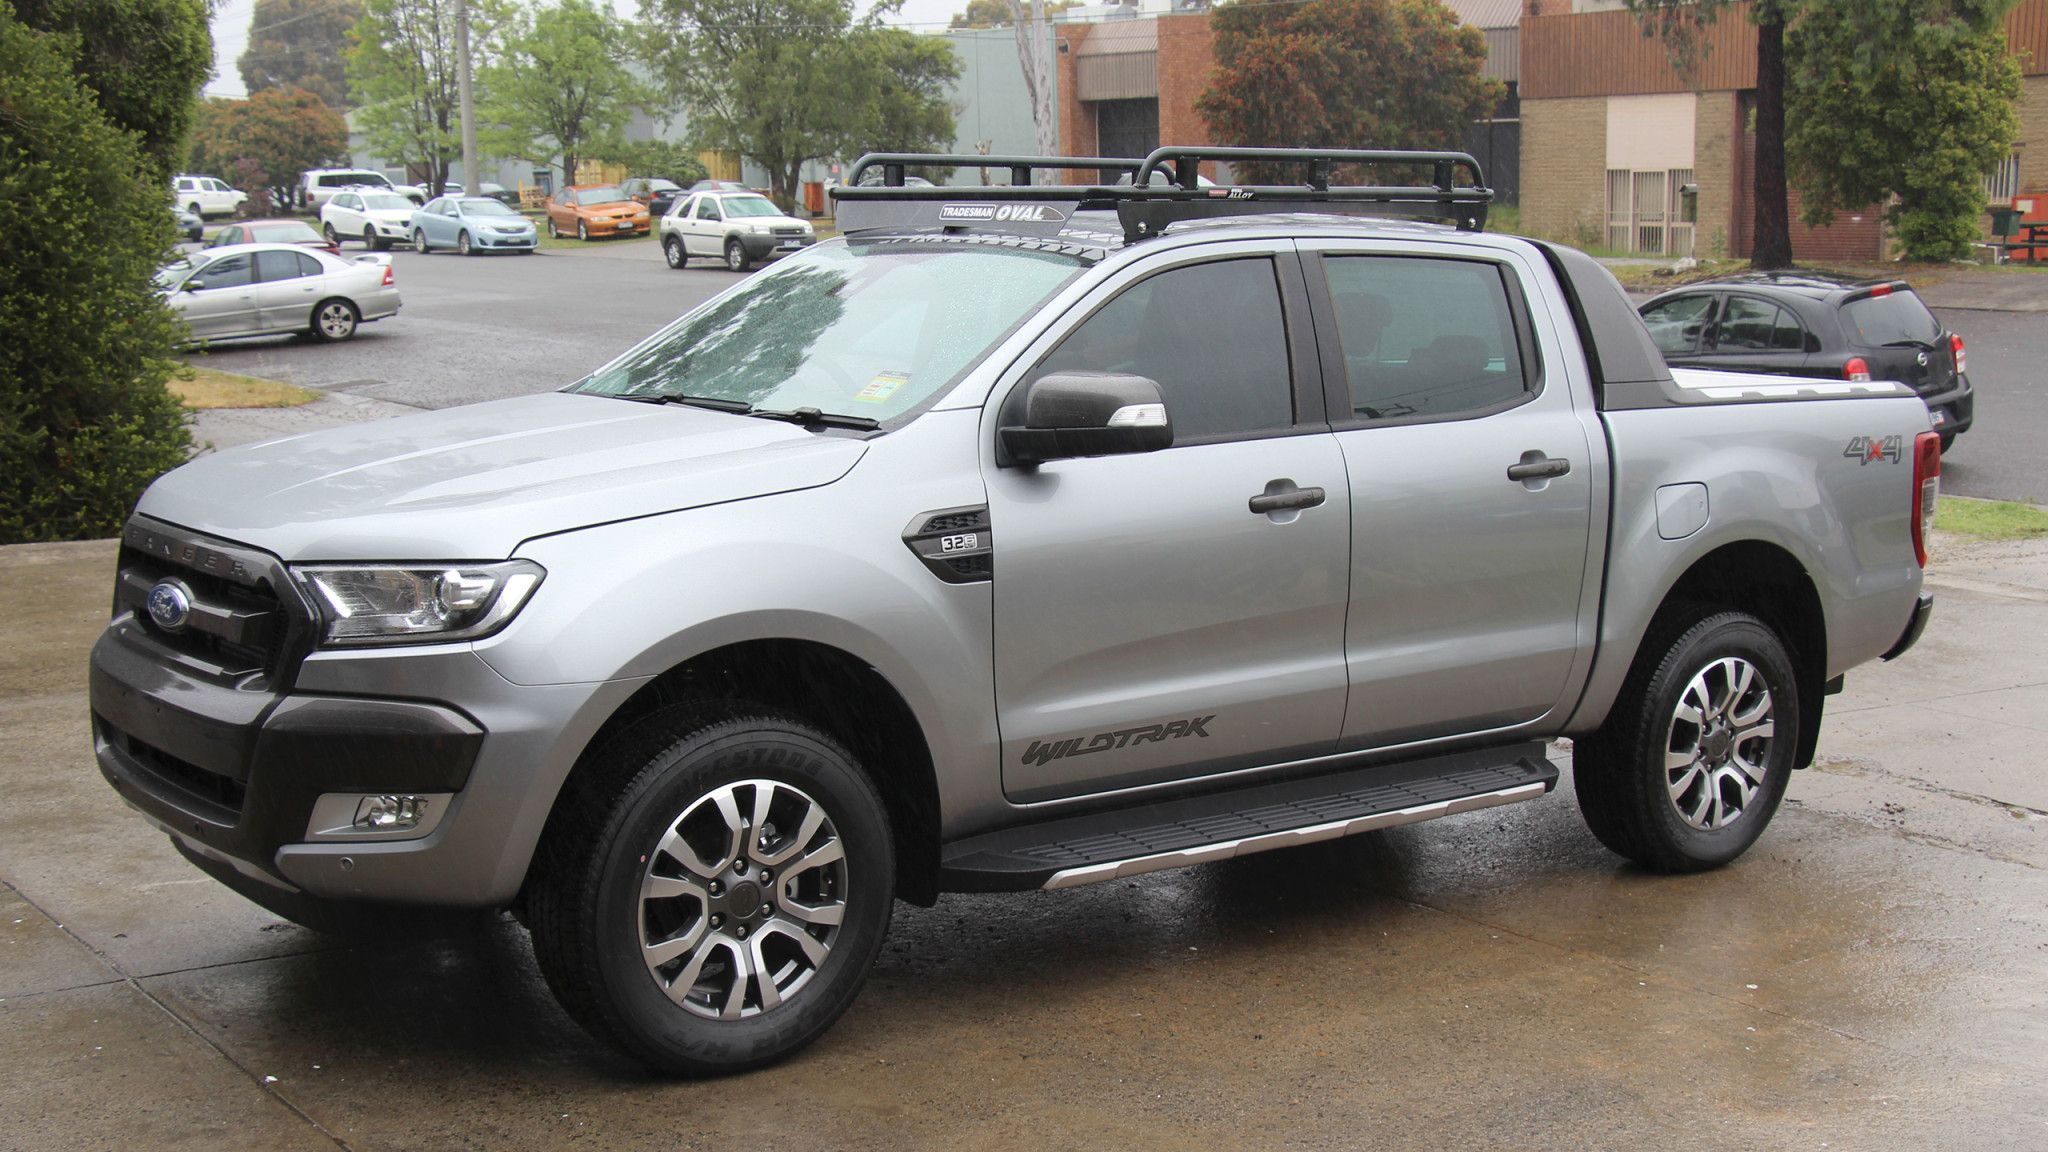 Ford Ranger Wildtrak With Oval Alloy Roof Rack Ford Ranger Ford